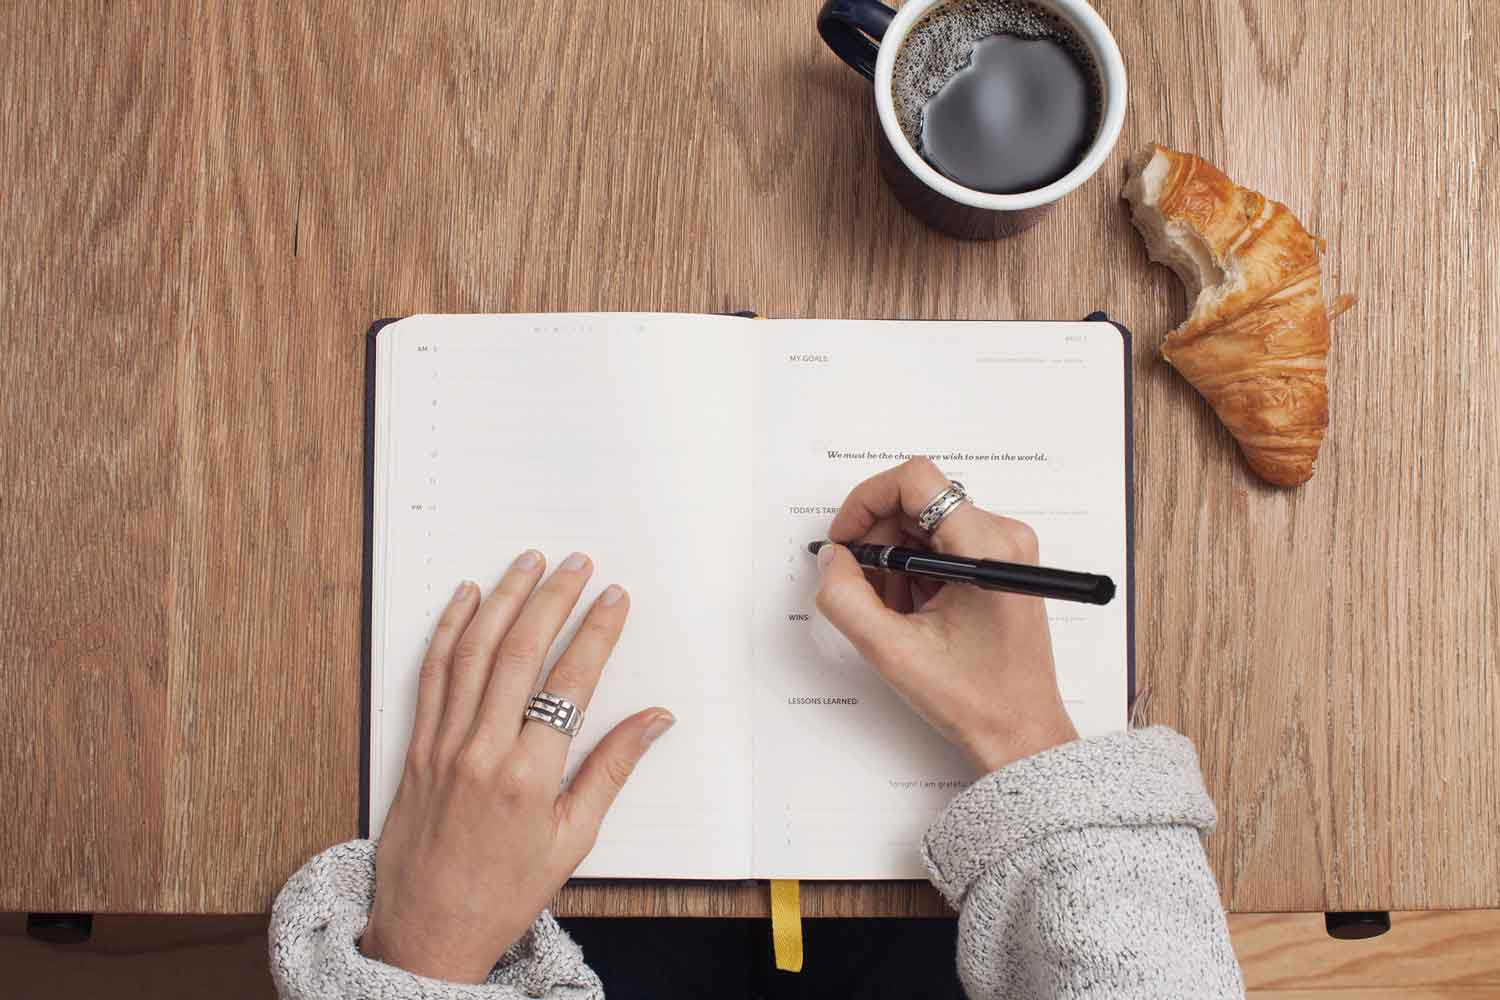 a woman writing in a notebook with a cup of coffee and a croissant on the table